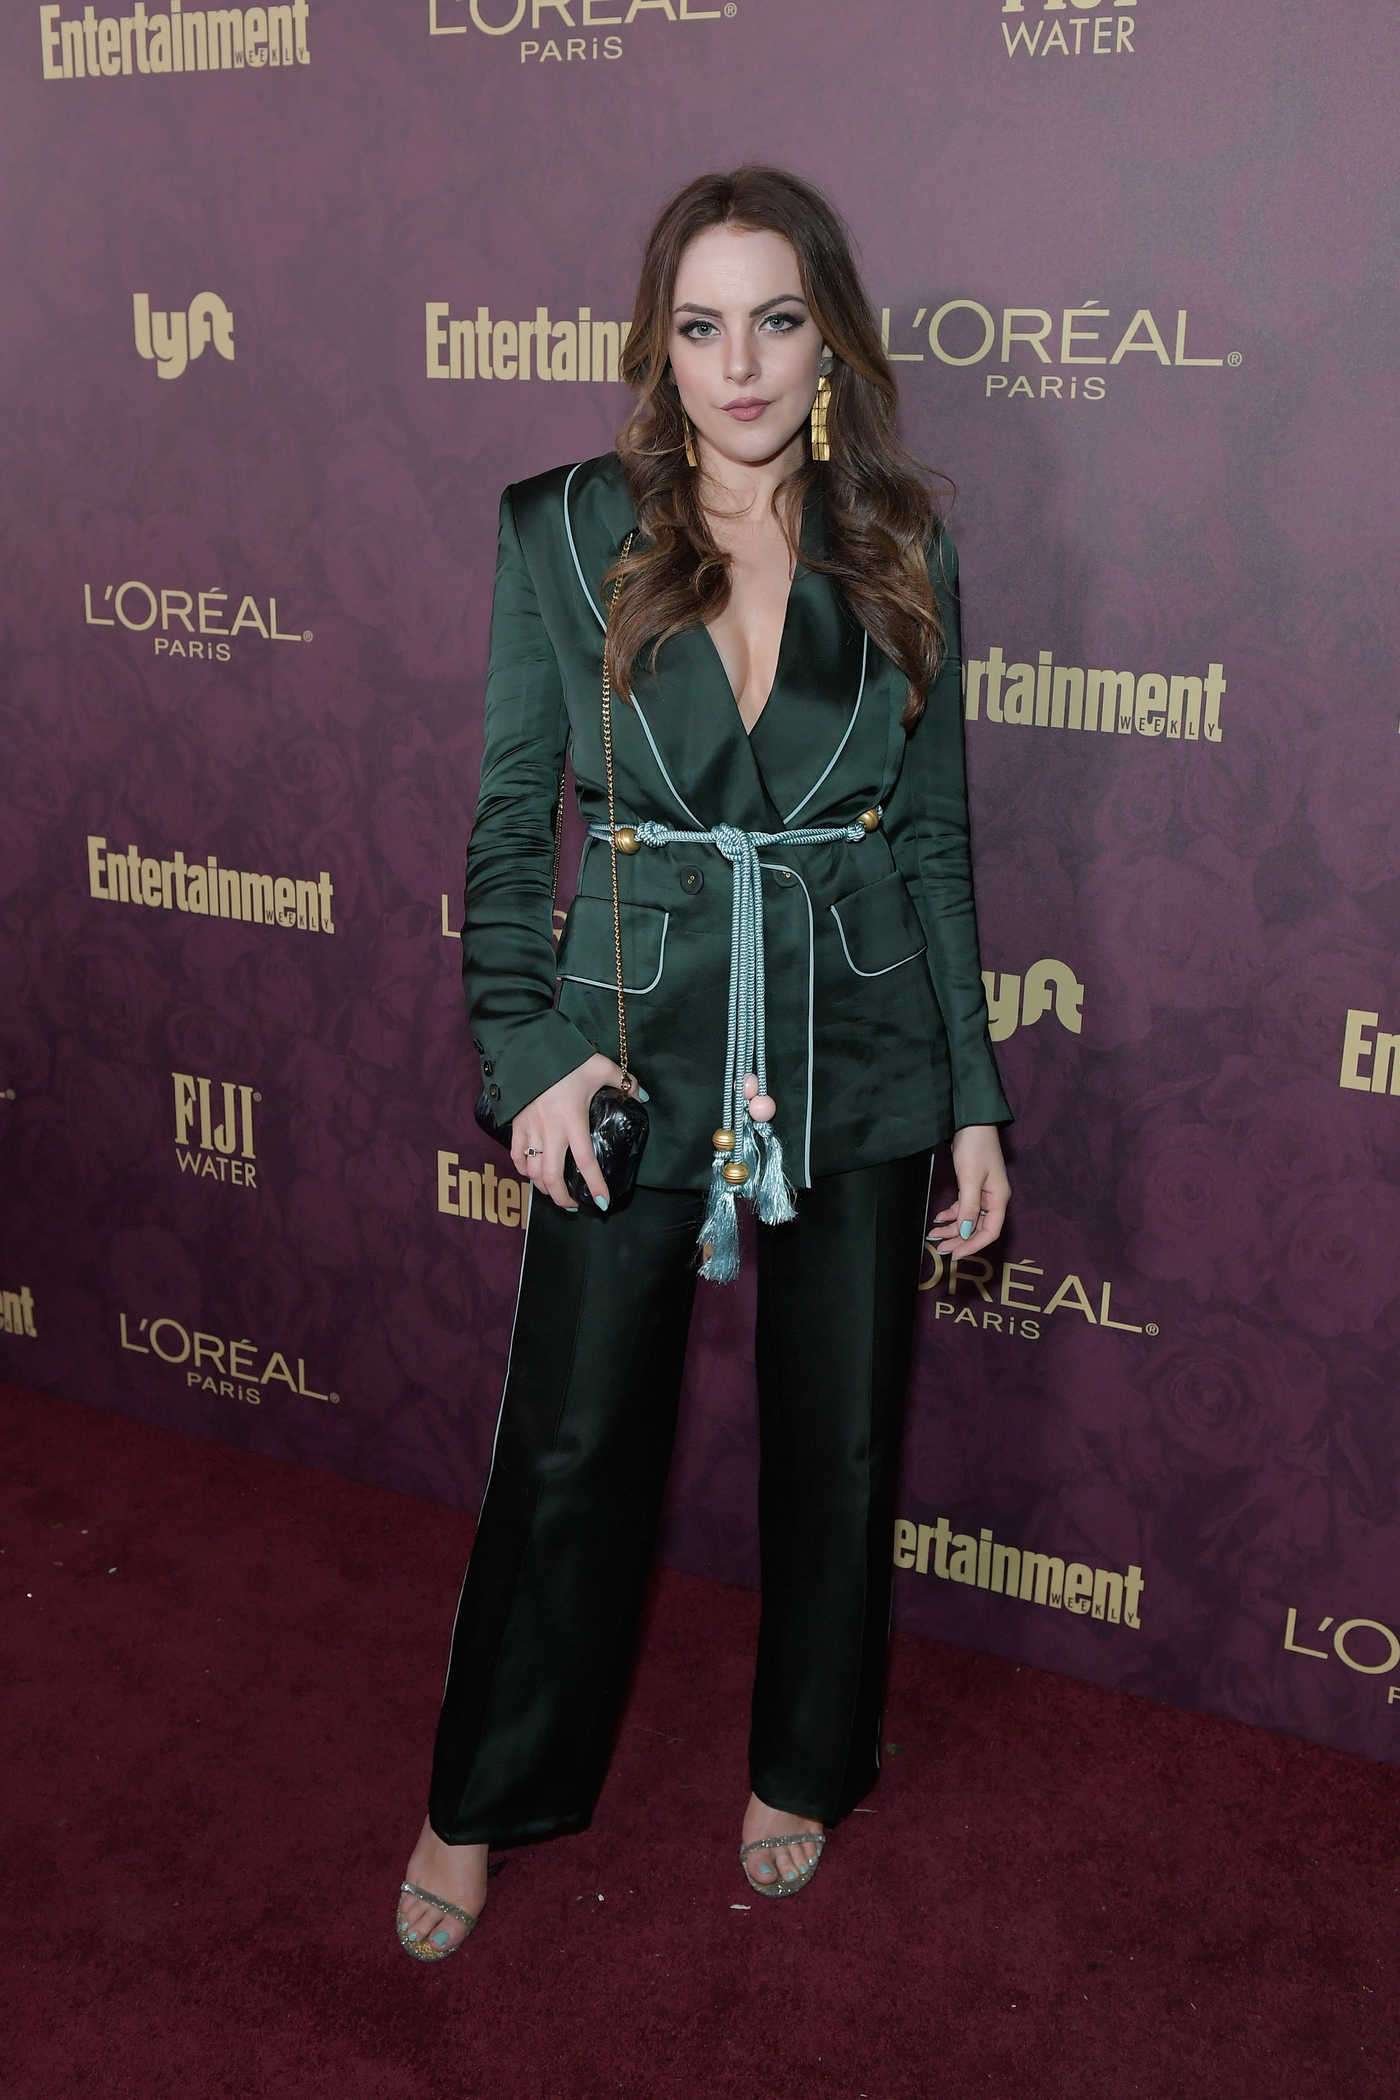 Elizabeth Gillies Attends Entertainment Weekly and L'Oreal Paris Pre-Emmy Party in Los Angeles 09/15/2018